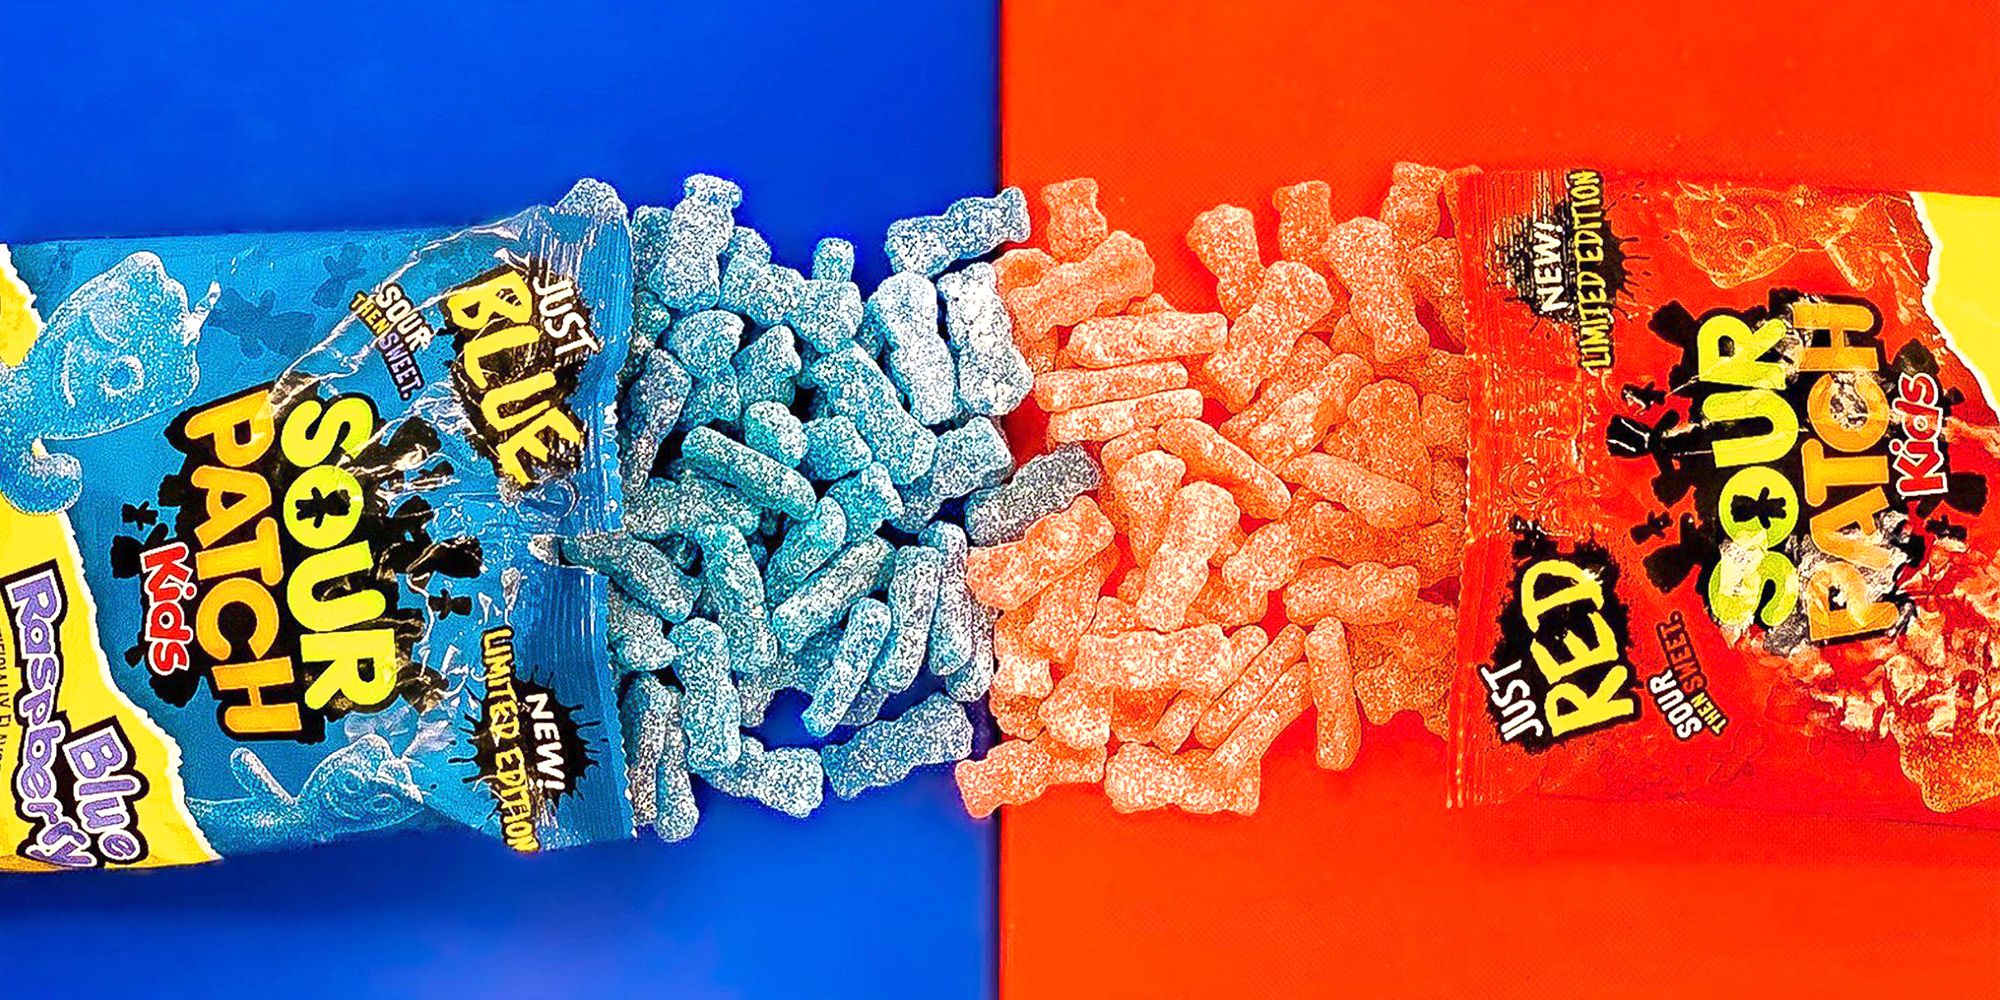 Sour Patch Kids Now Come In Just Blue And Just Red Bags 2019 7 Eleven Candy